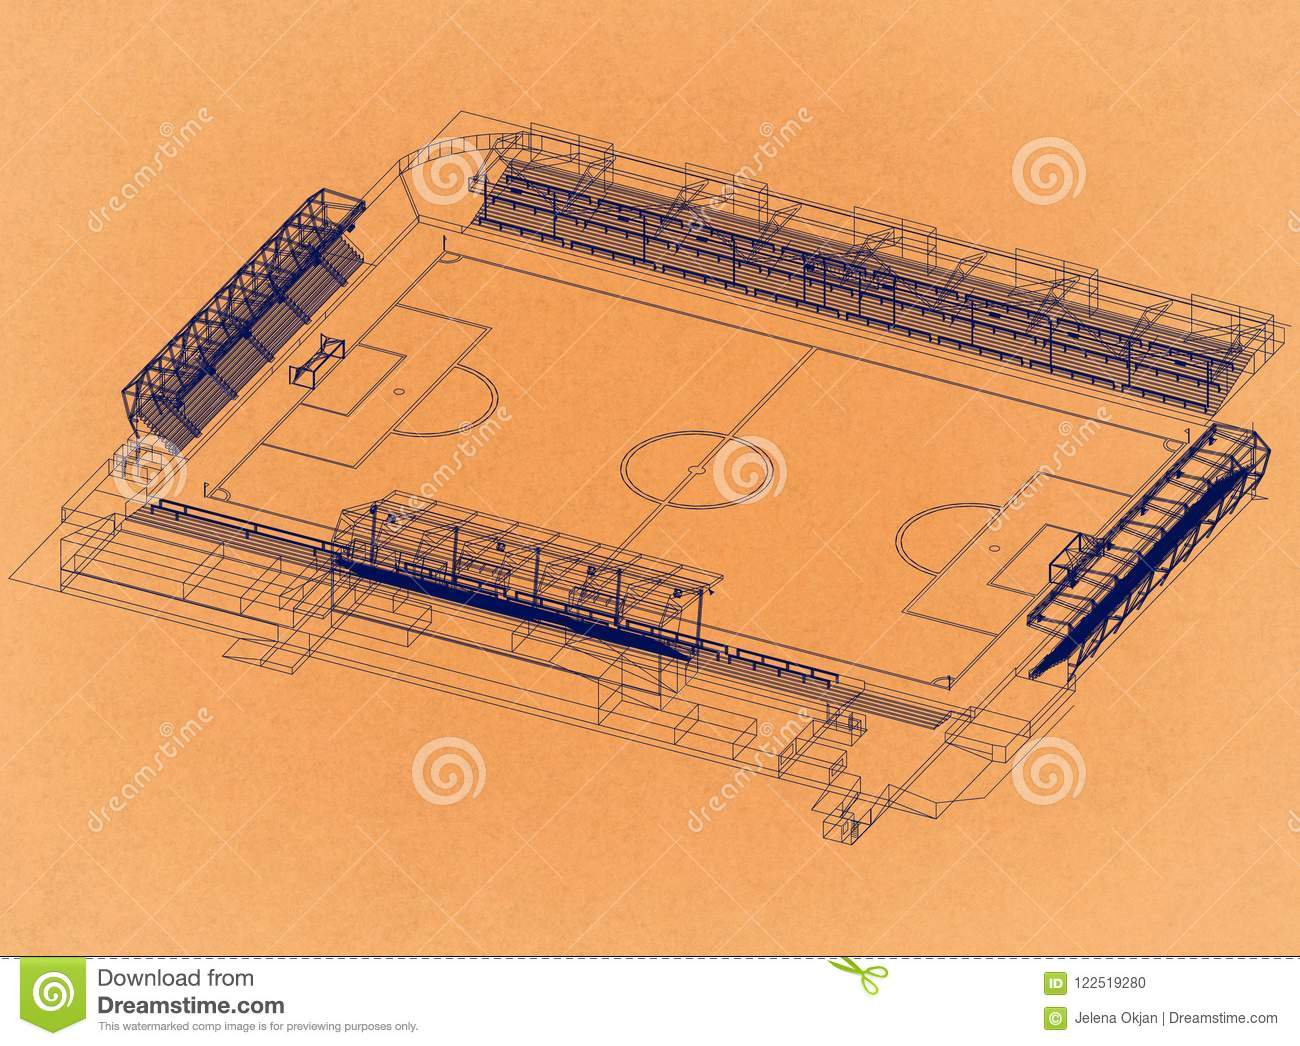 Stadio di football americano - retro architetto Blueprint